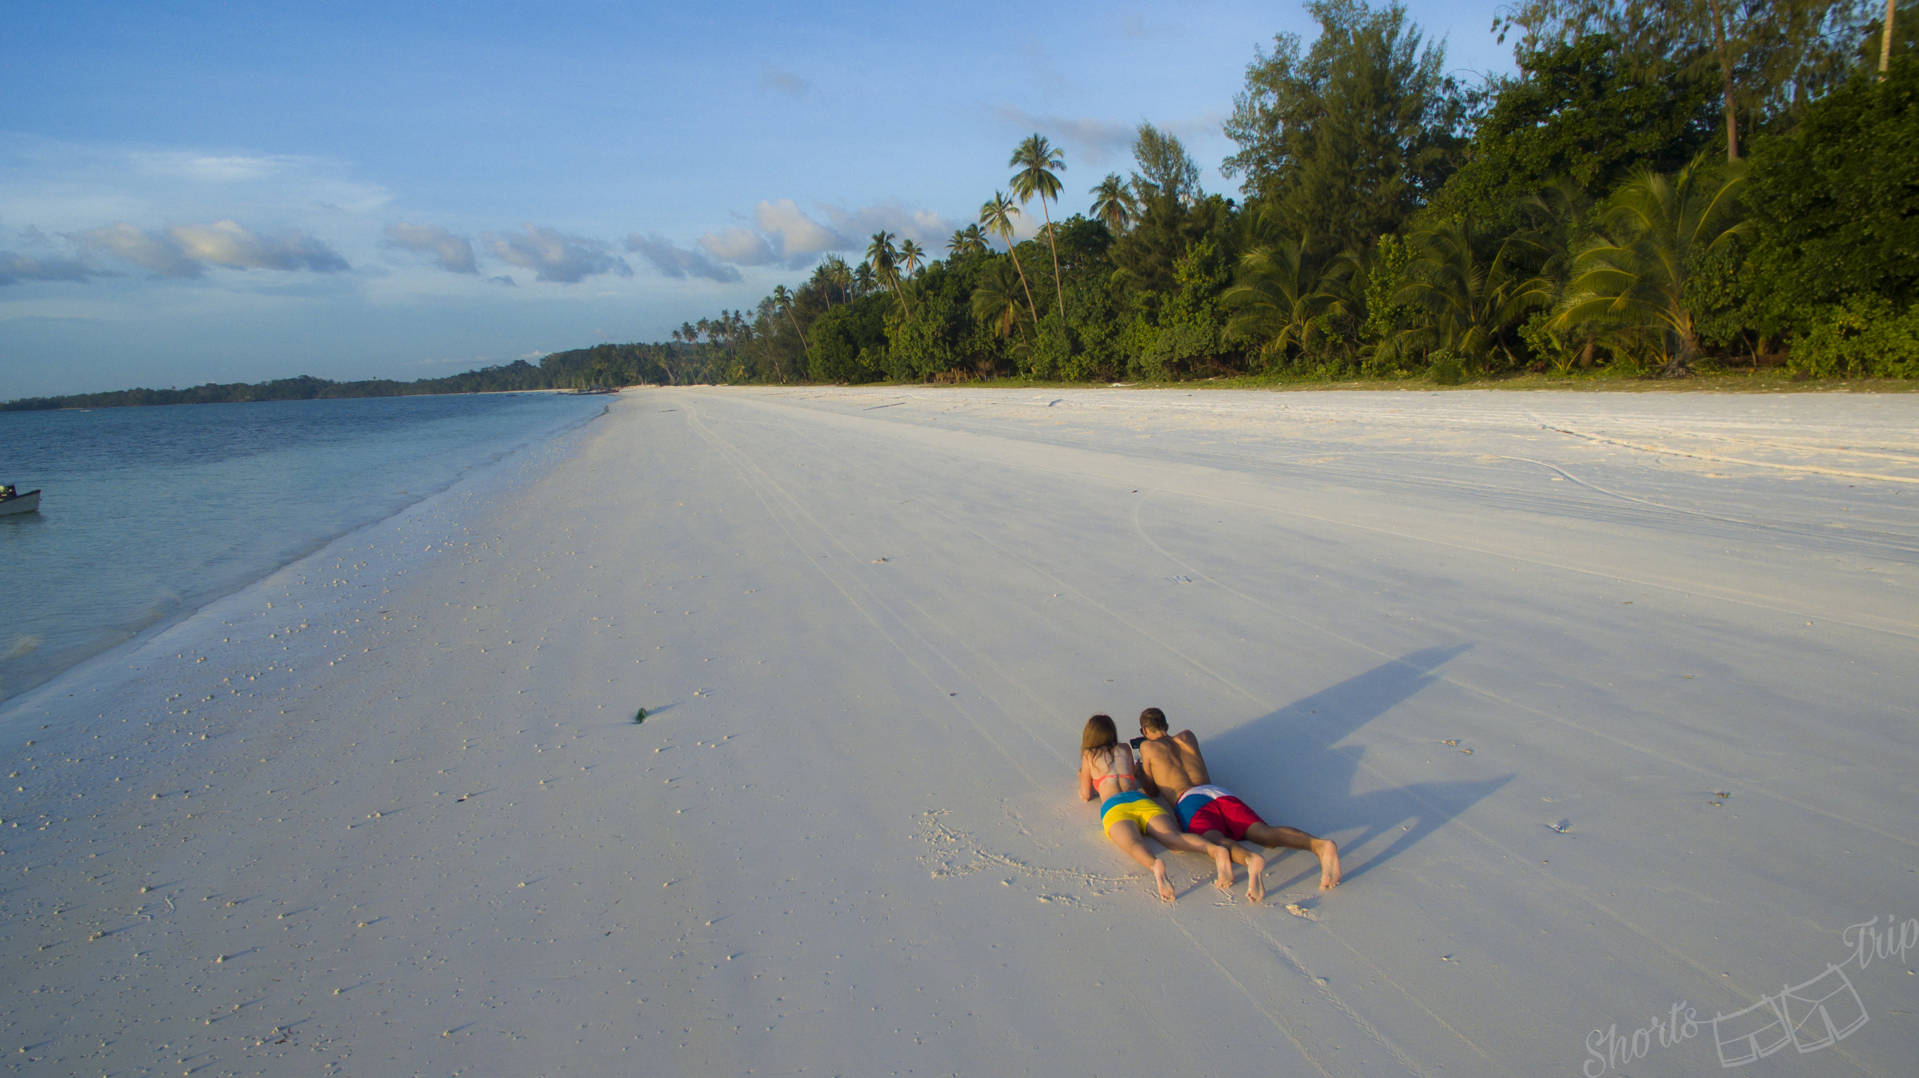 pasir panjang, best beach, most beautiful beach, pasir panjang white beach, beach pasir panjang, beautiful pasir panjang